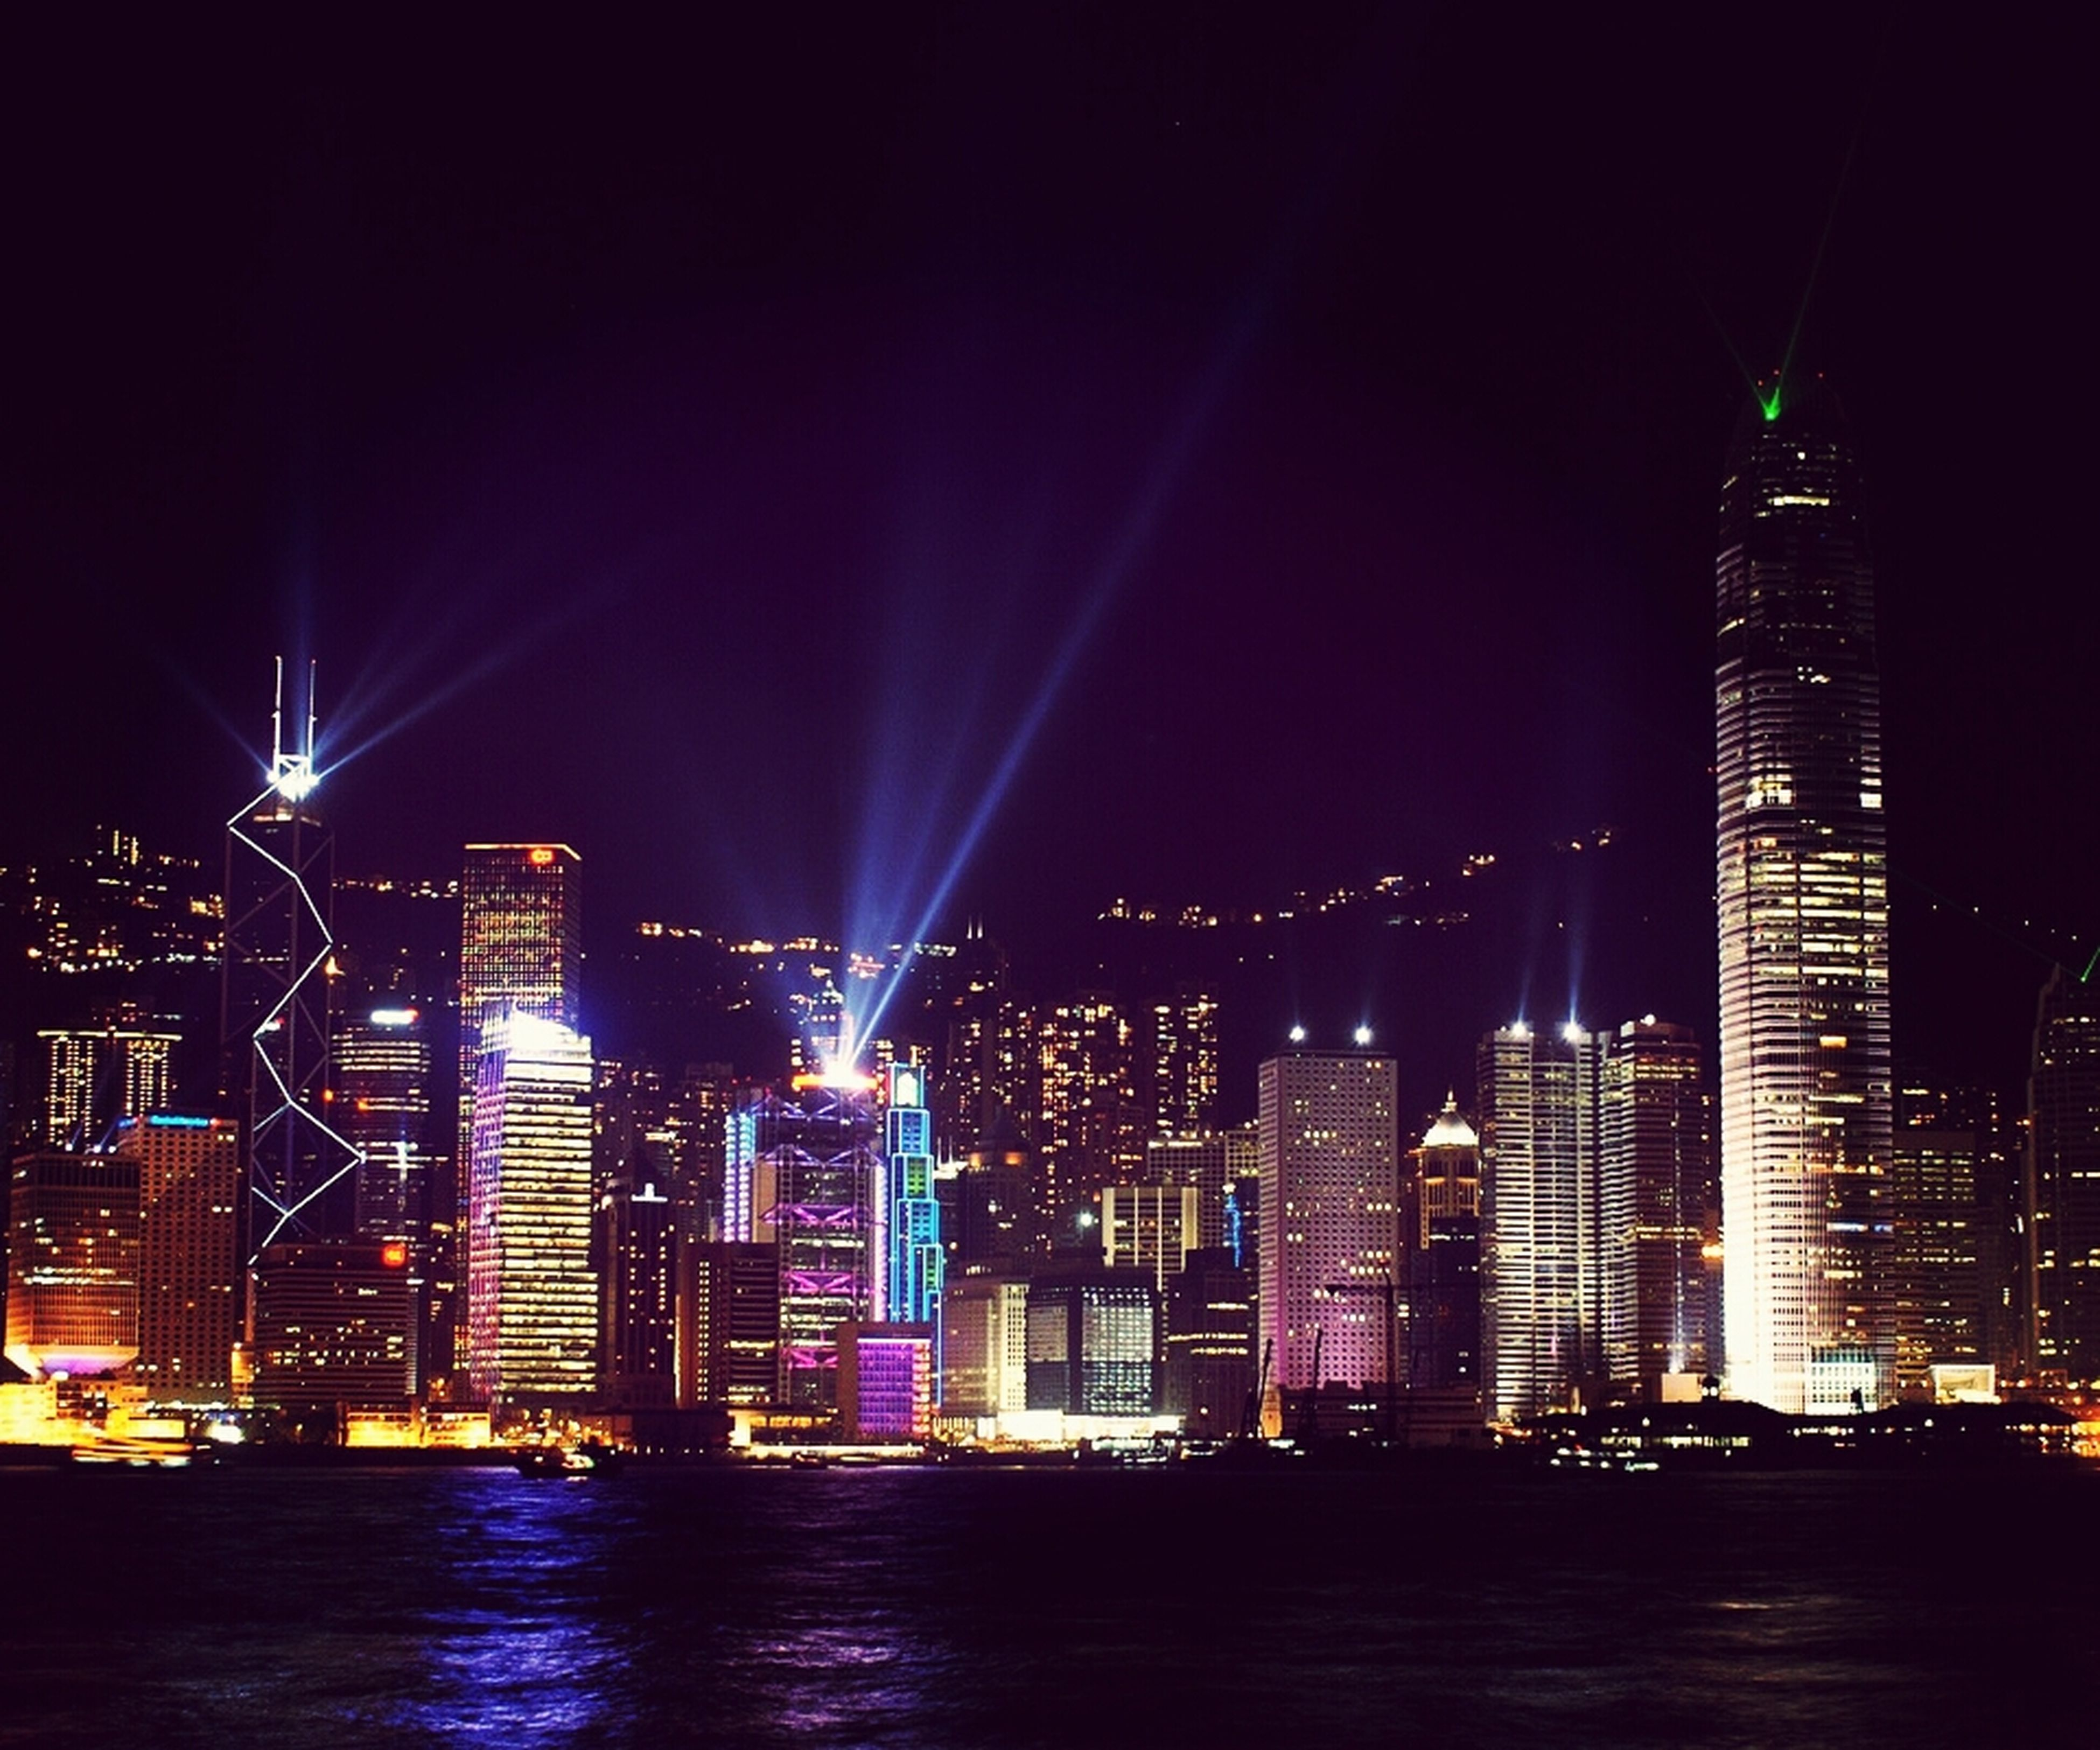 illuminated, night, architecture, building exterior, city, built structure, skyscraper, cityscape, modern, office building, urban skyline, tall - high, tower, waterfront, financial district, river, capital cities, sky, city life, water